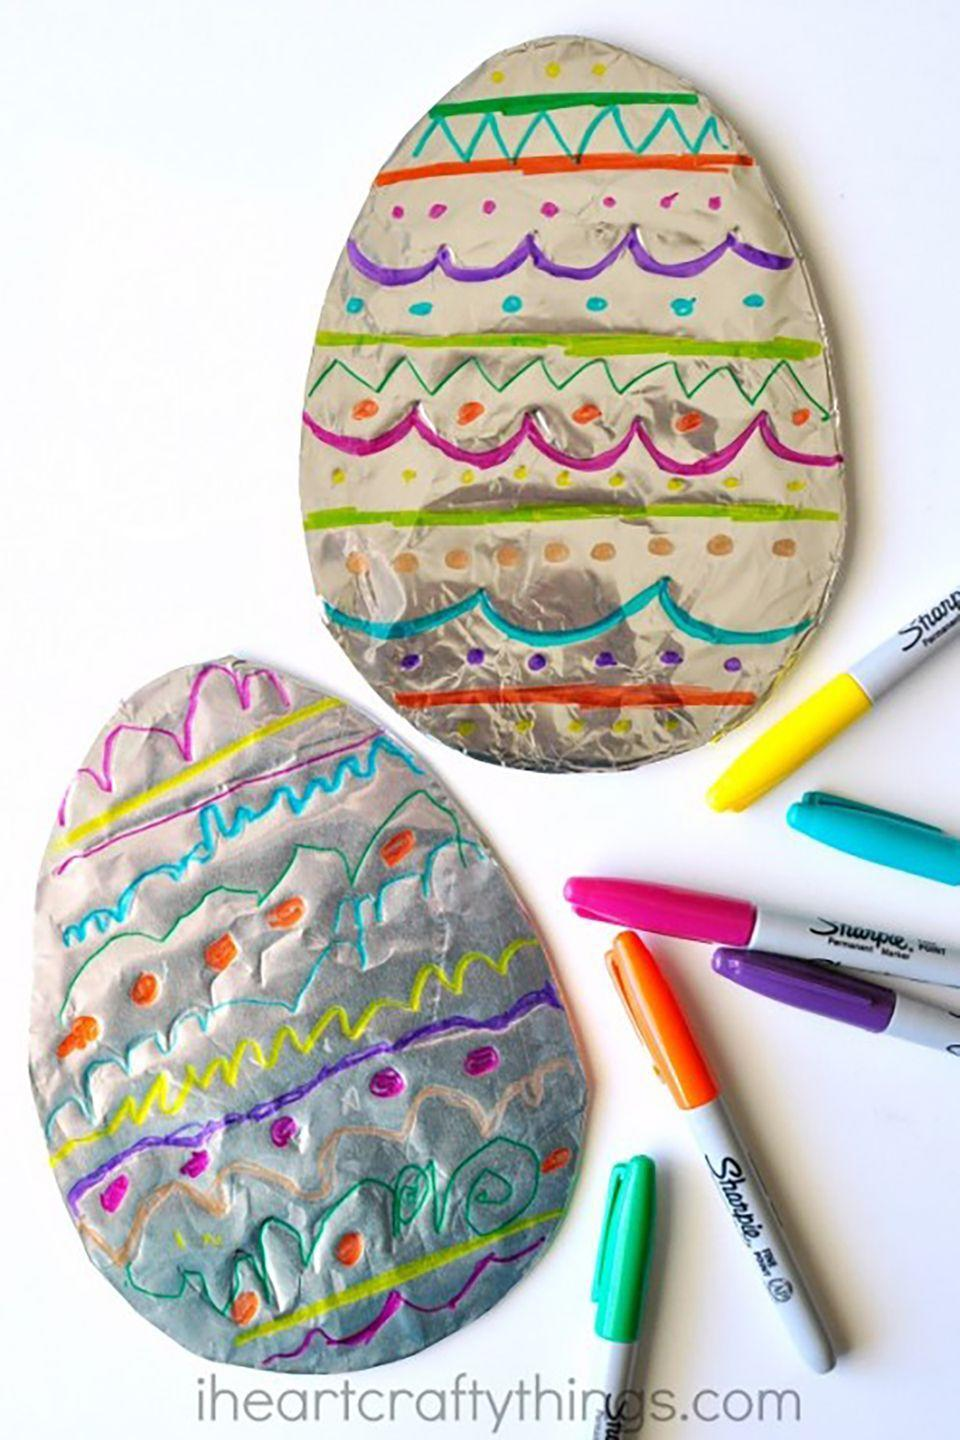 """<p>With cardboard, foil, and different colored Sharpies, your kids can let their creativity shine by decorating their own Easter eggs.</p><p><strong>Get the tutorial at <a href=""""http://iheartcraftythings.com/tin-foil-easter-egg-art.html"""" rel=""""nofollow noopener"""" target=""""_blank"""" data-ylk=""""slk:I Heart Crafty Things"""" class=""""link rapid-noclick-resp"""">I Heart Crafty Things</a>. </strong></p>"""